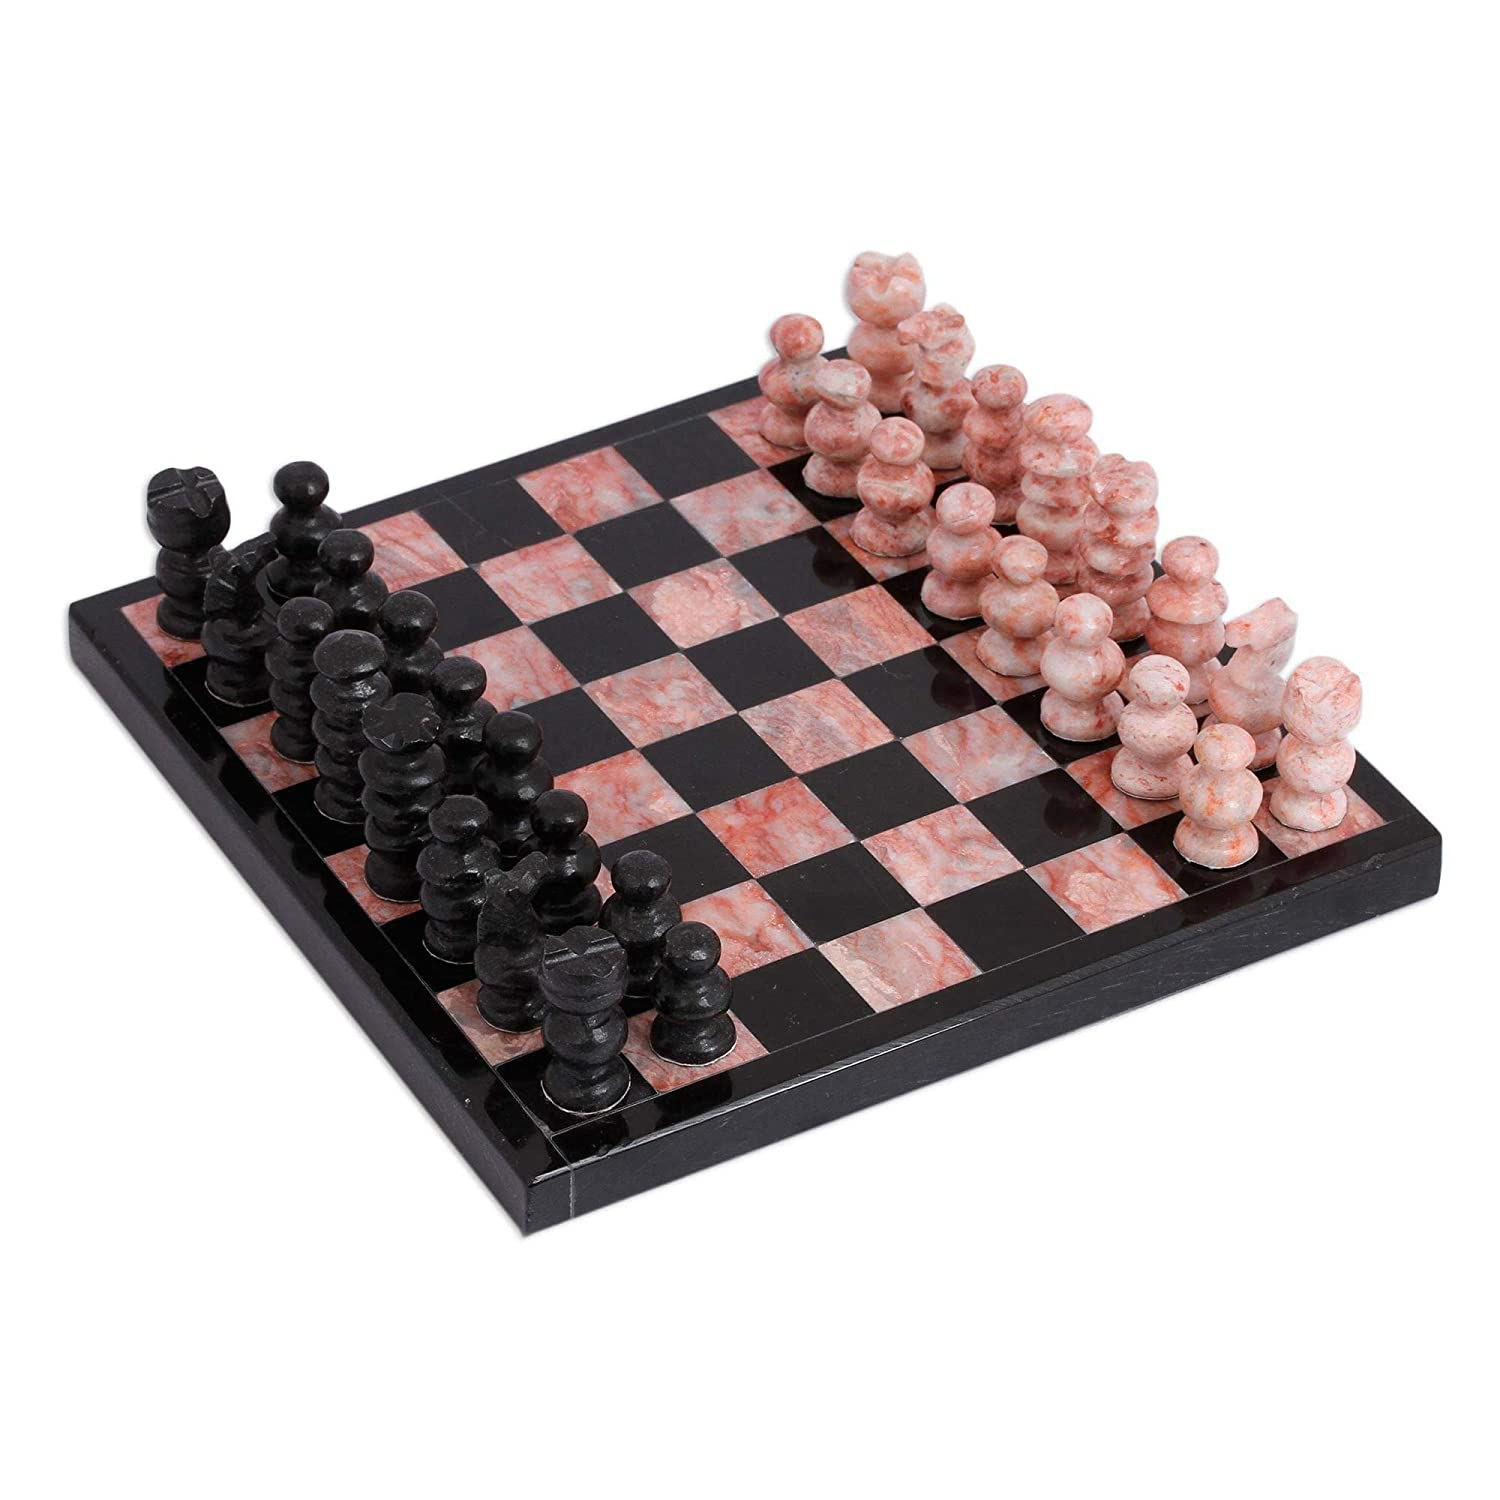 7.5 in. NOVICA 339072 Black and Pink Challenge Small Marble Chess Set in,